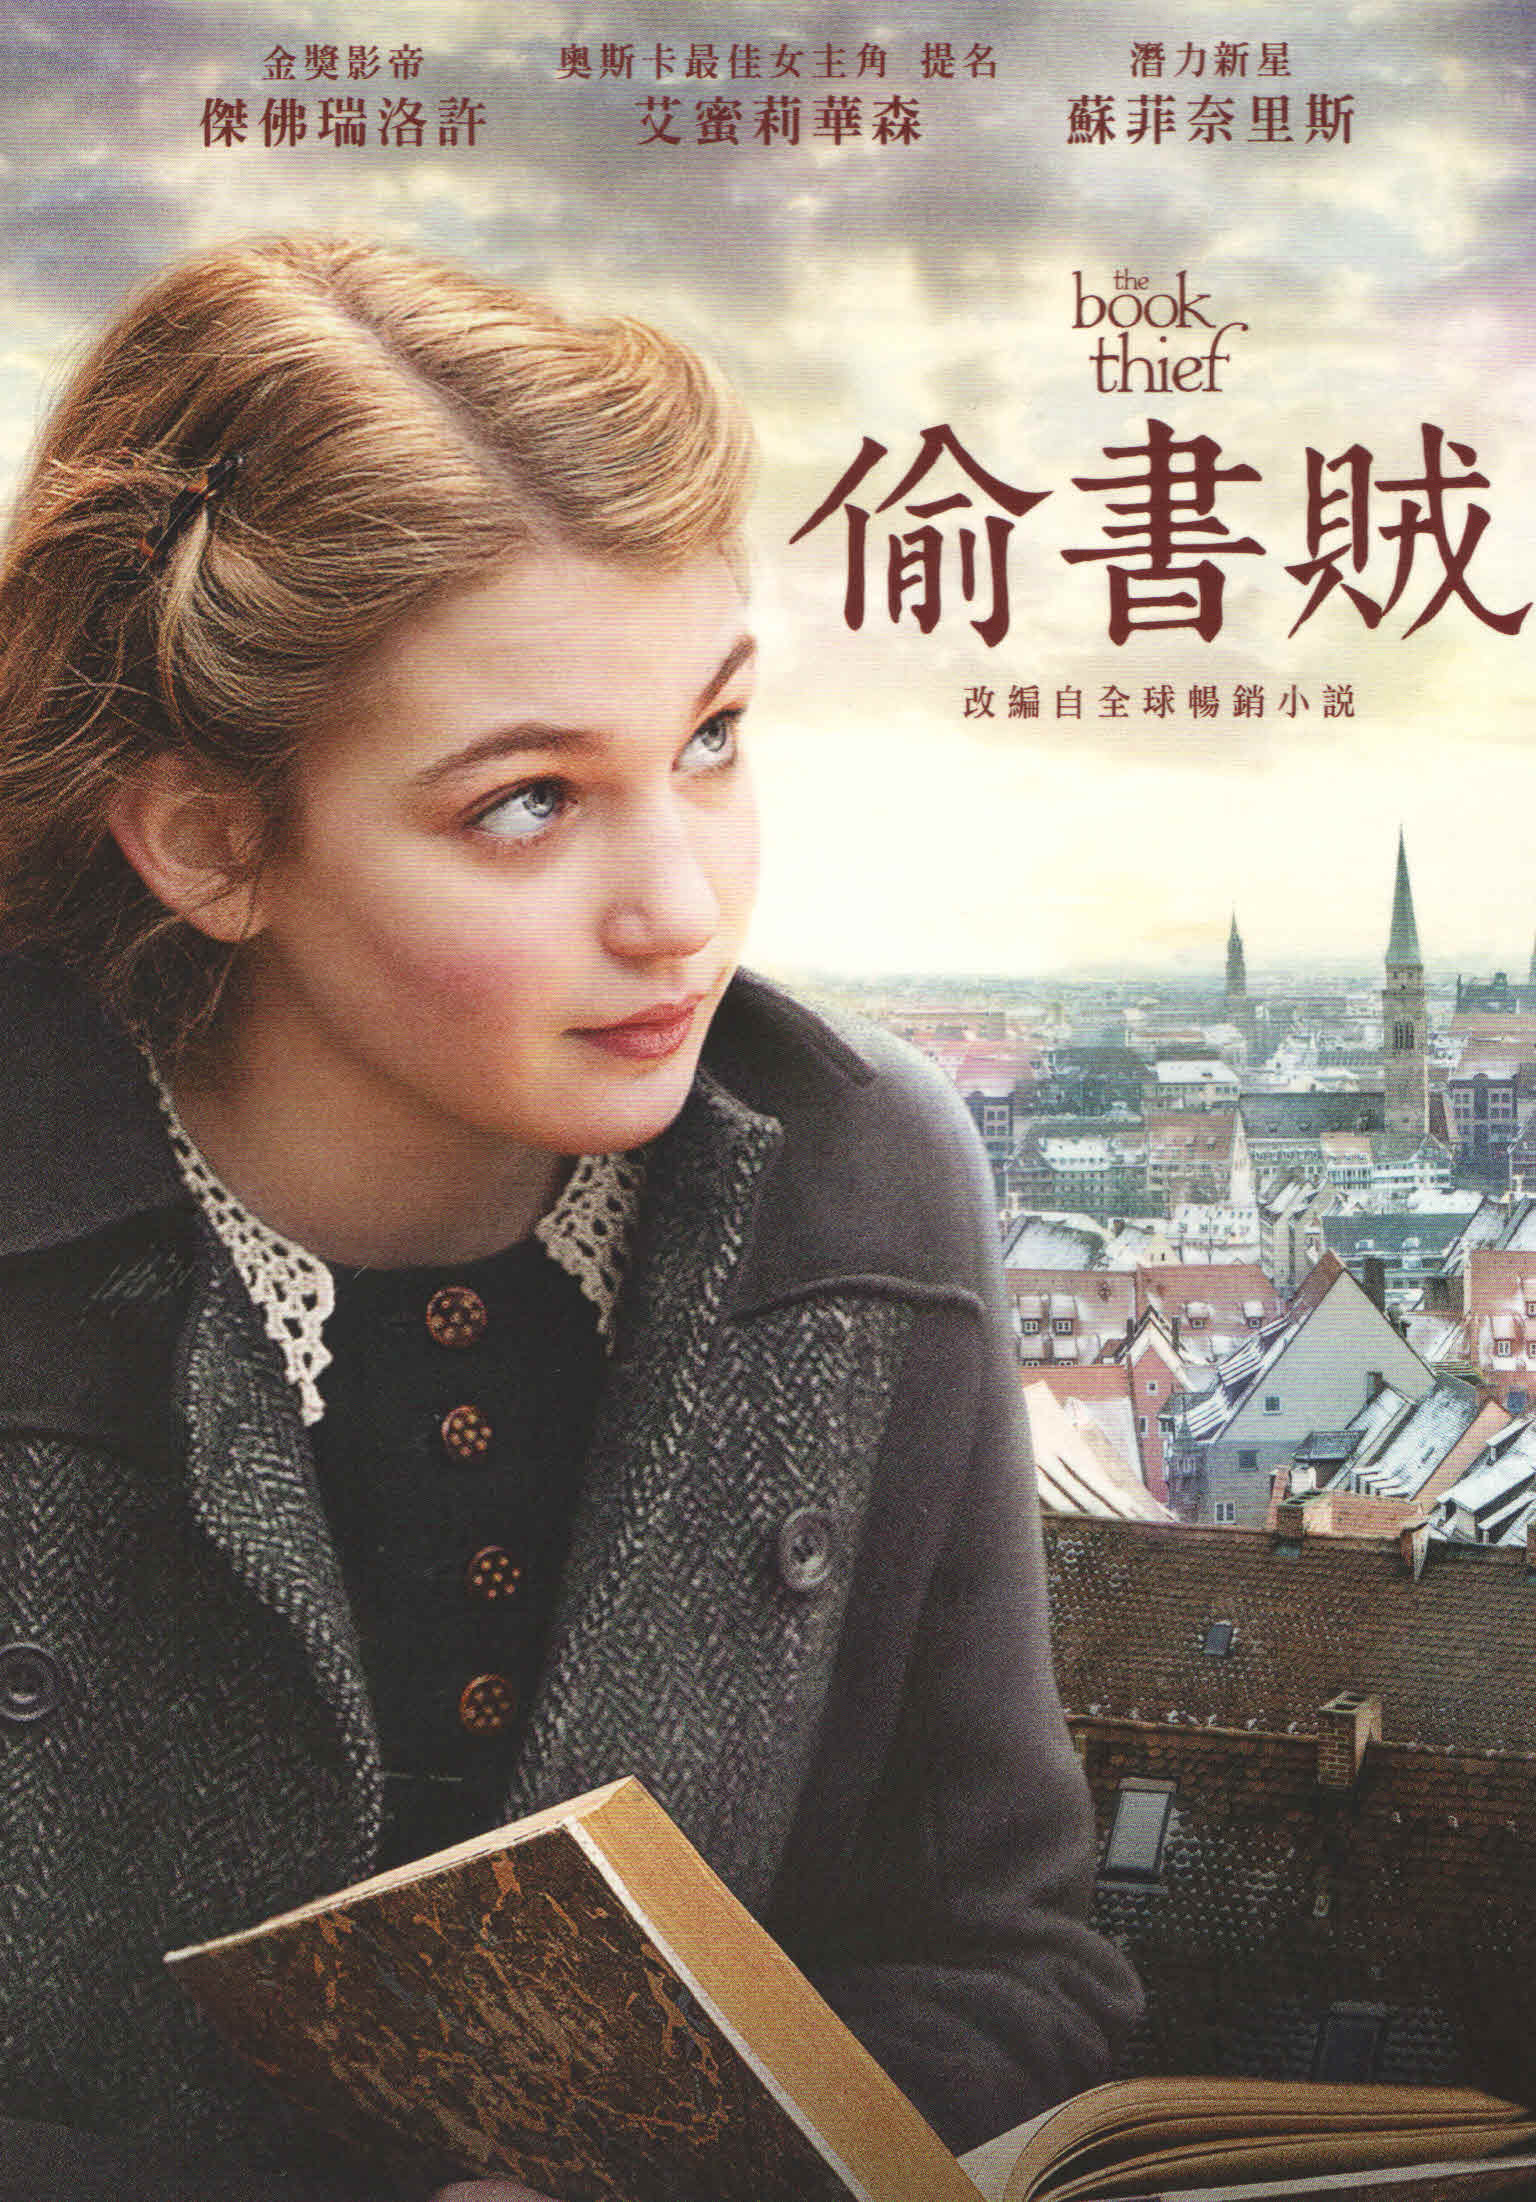 The book thief  偷書賊